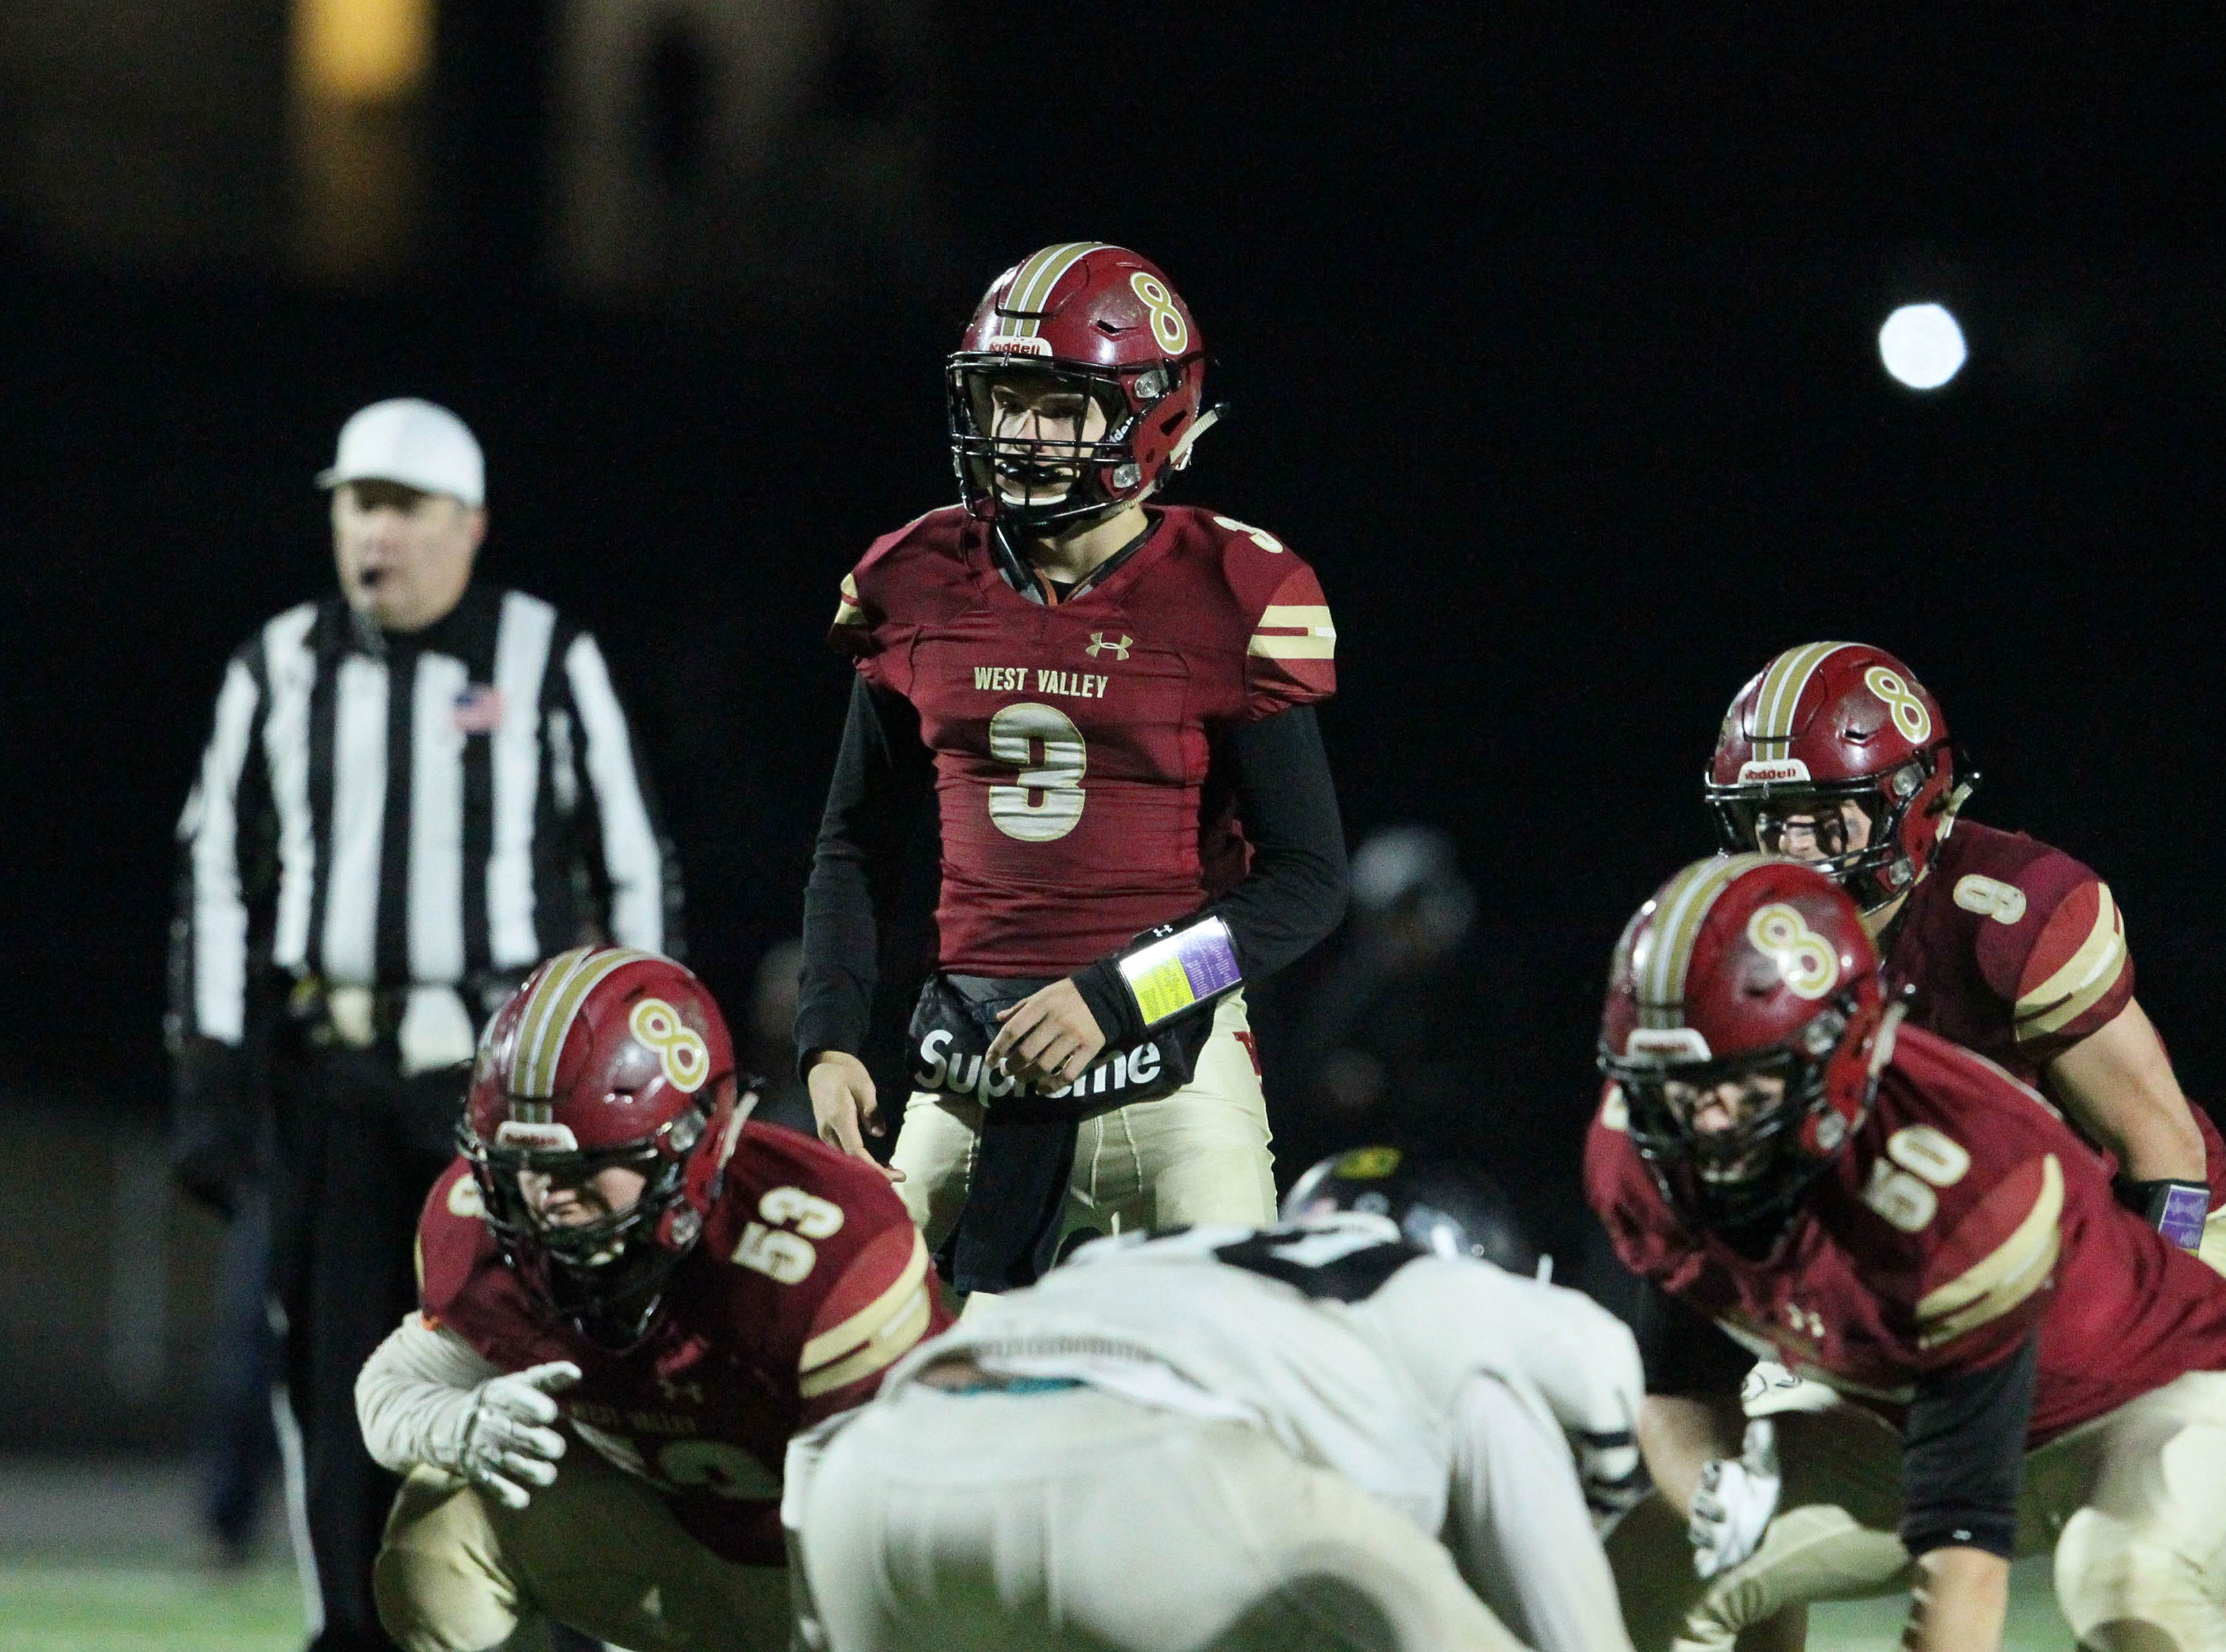 West Valley quarterback Kitt McCloughan surveys the field.   Rio Linda beat the Eagles, 21-13, to take the NorCal regional title for Division 5-AA in Red Bluff on Friday, Dec. 7.